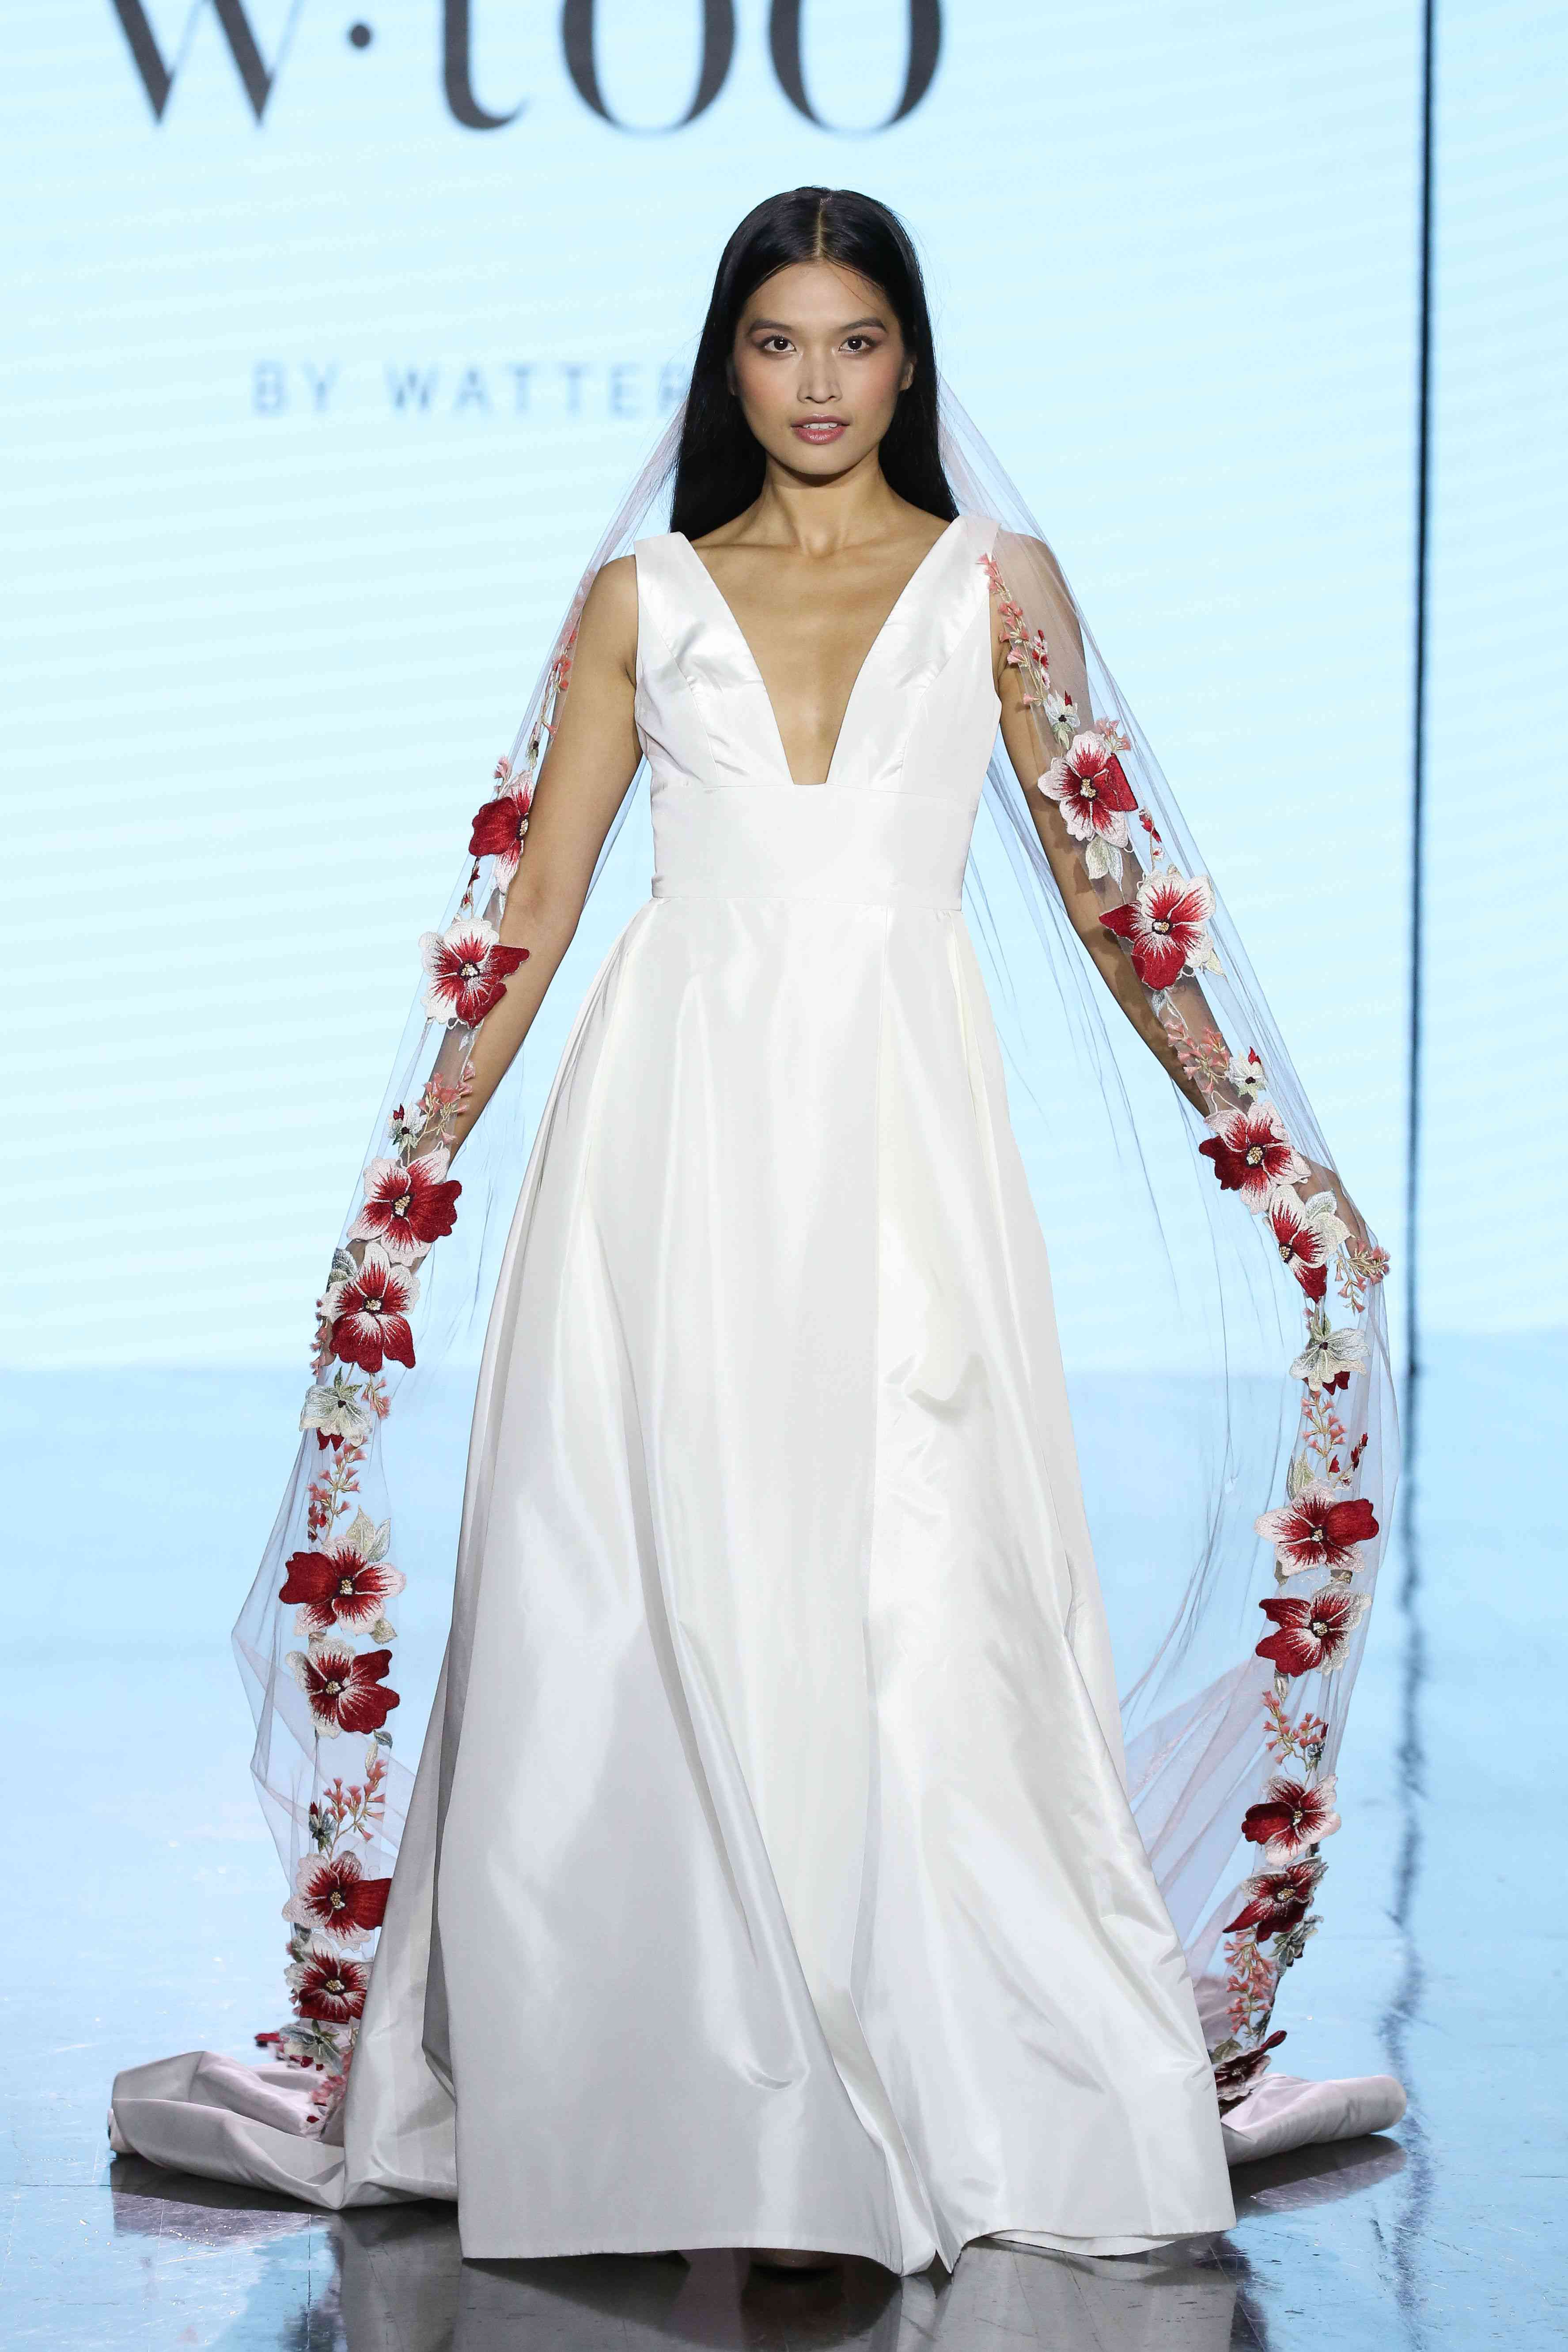 Model in sleeveless satin wedding gown with a plunging neckline and banded waist